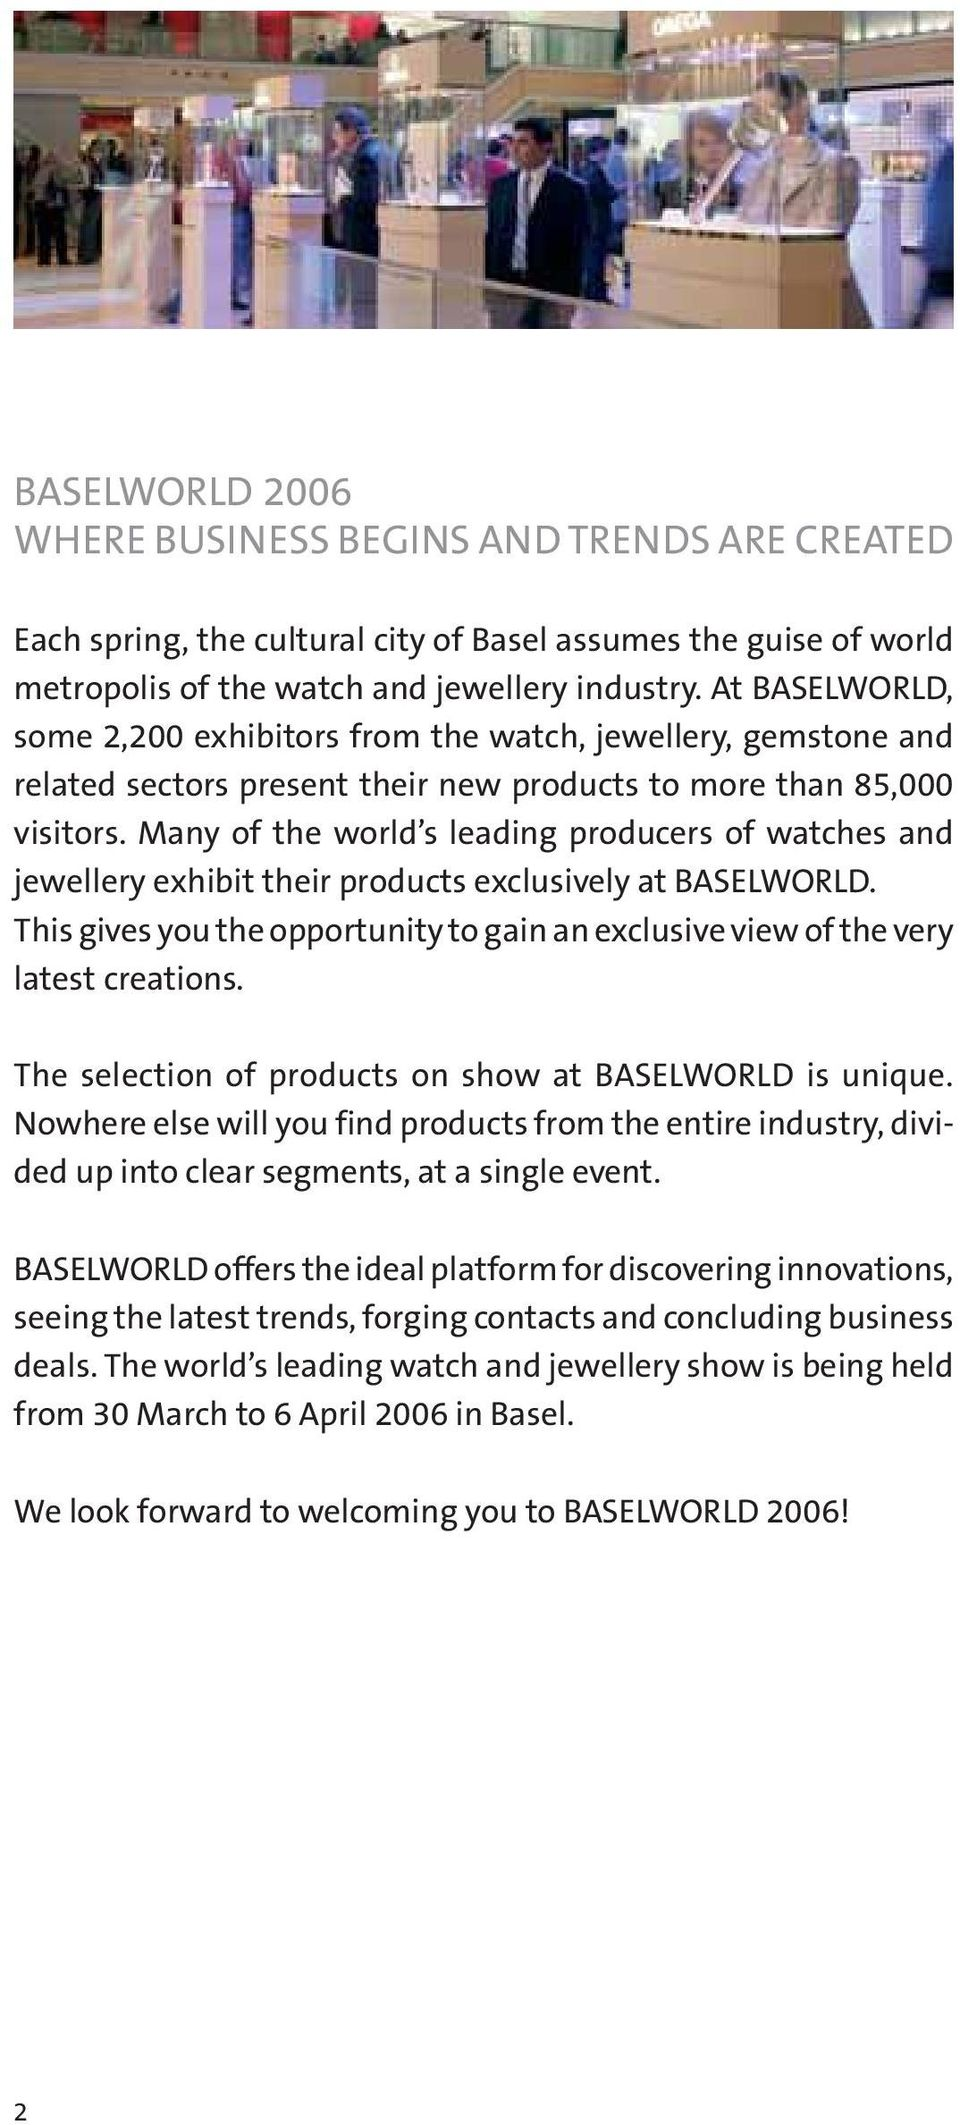 Many of the world s leading producers of watches and jewellery exhibit their products exclusively at BASELWORLD. This gives you the opportunity to gain an exclusive view of the very latest creations.